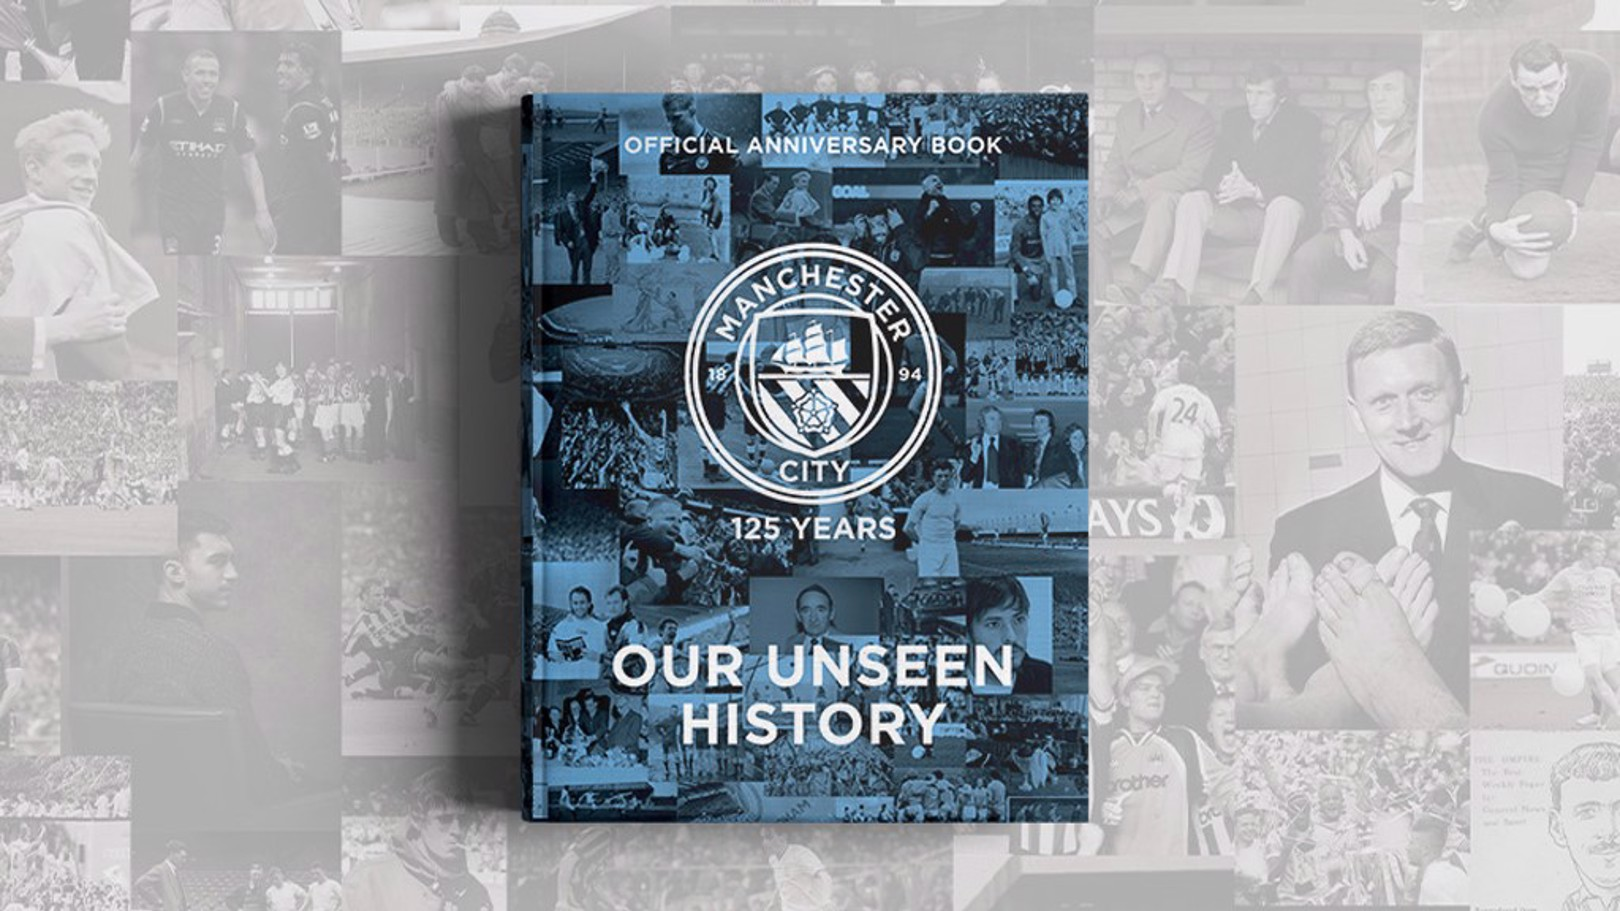 Unseen history:  125 anniversary book now on sale!